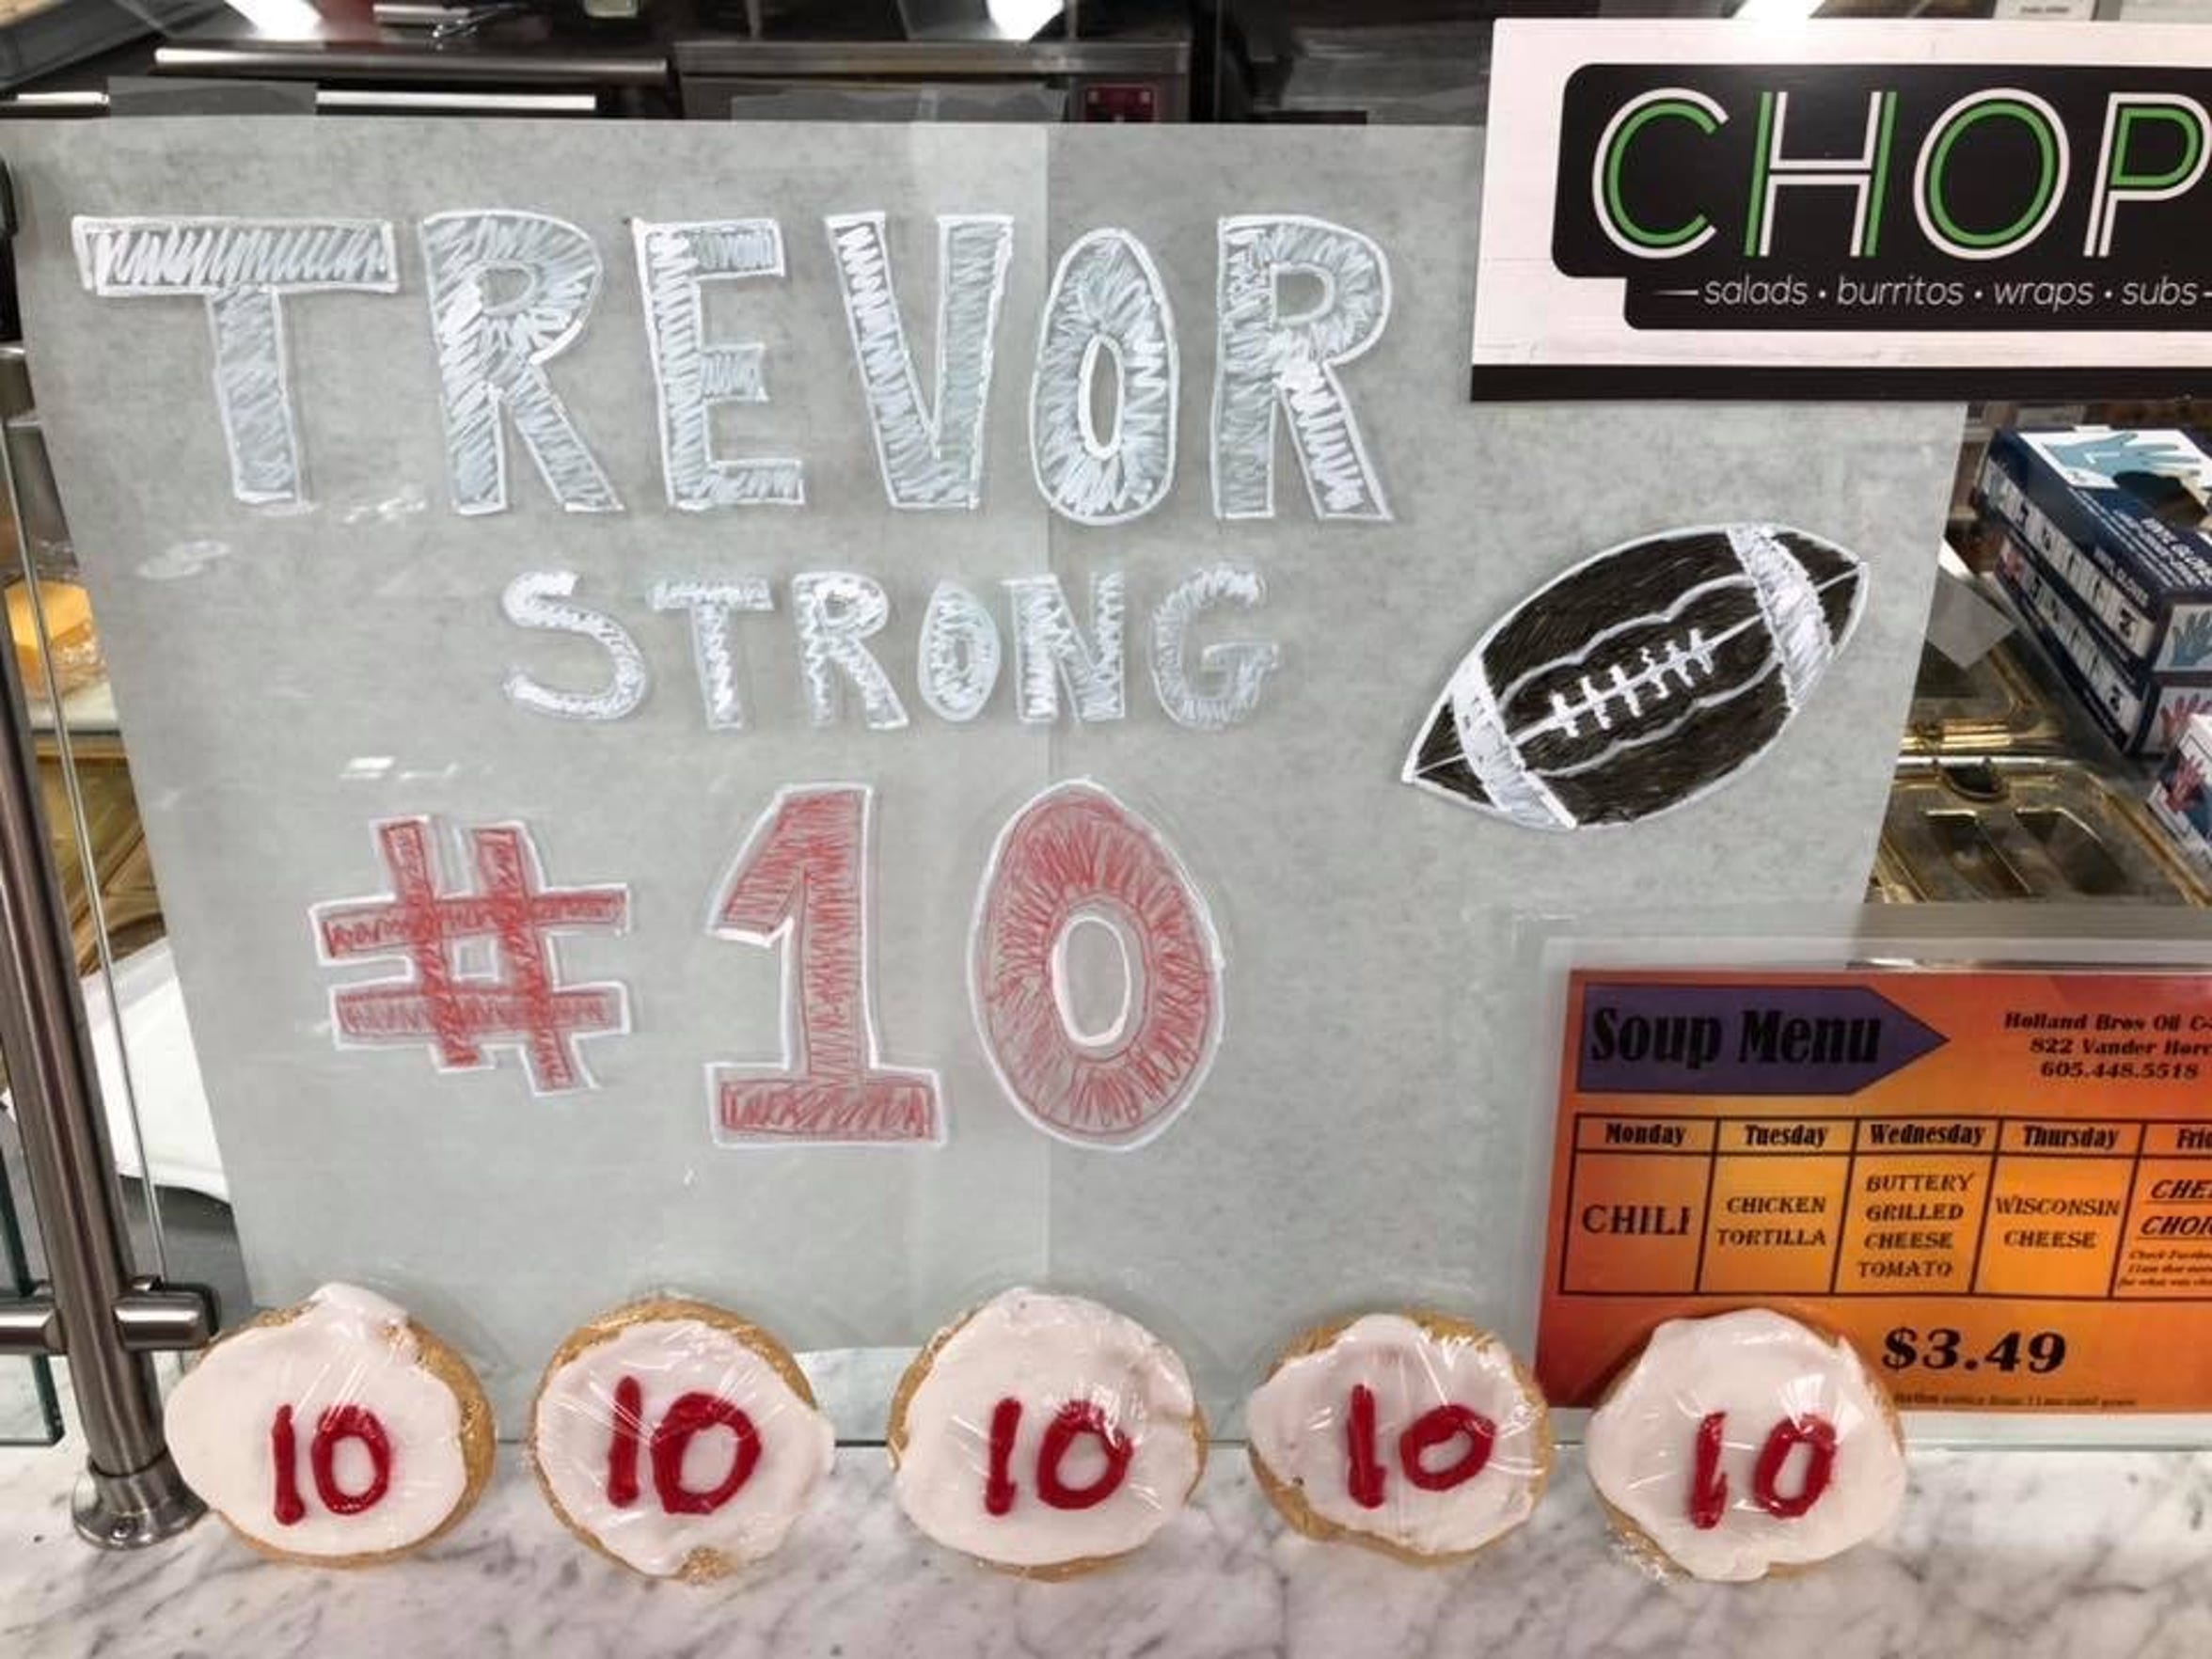 Chop sold special No. 10 cookies as part of a fundraiser for Britton-Hecla's Trevor Zuehlke.